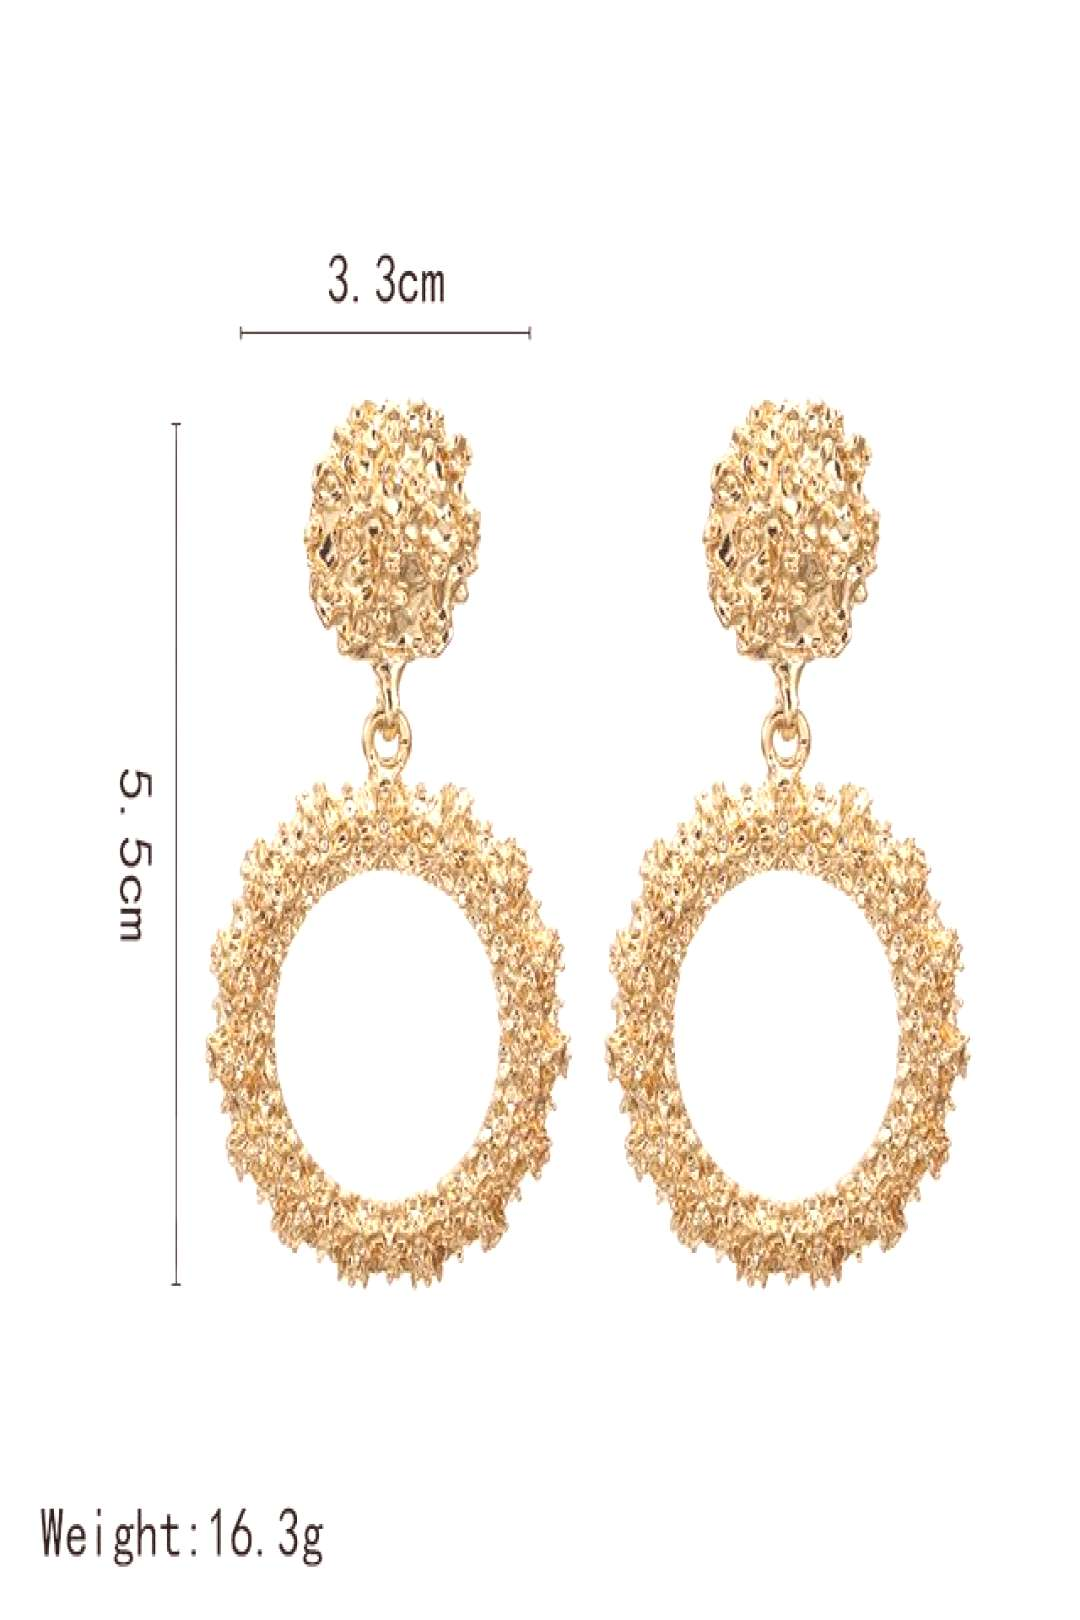 Round Earrings Circles Gold Indian + Earrings Round Circles round earrings circles gold indian | ea